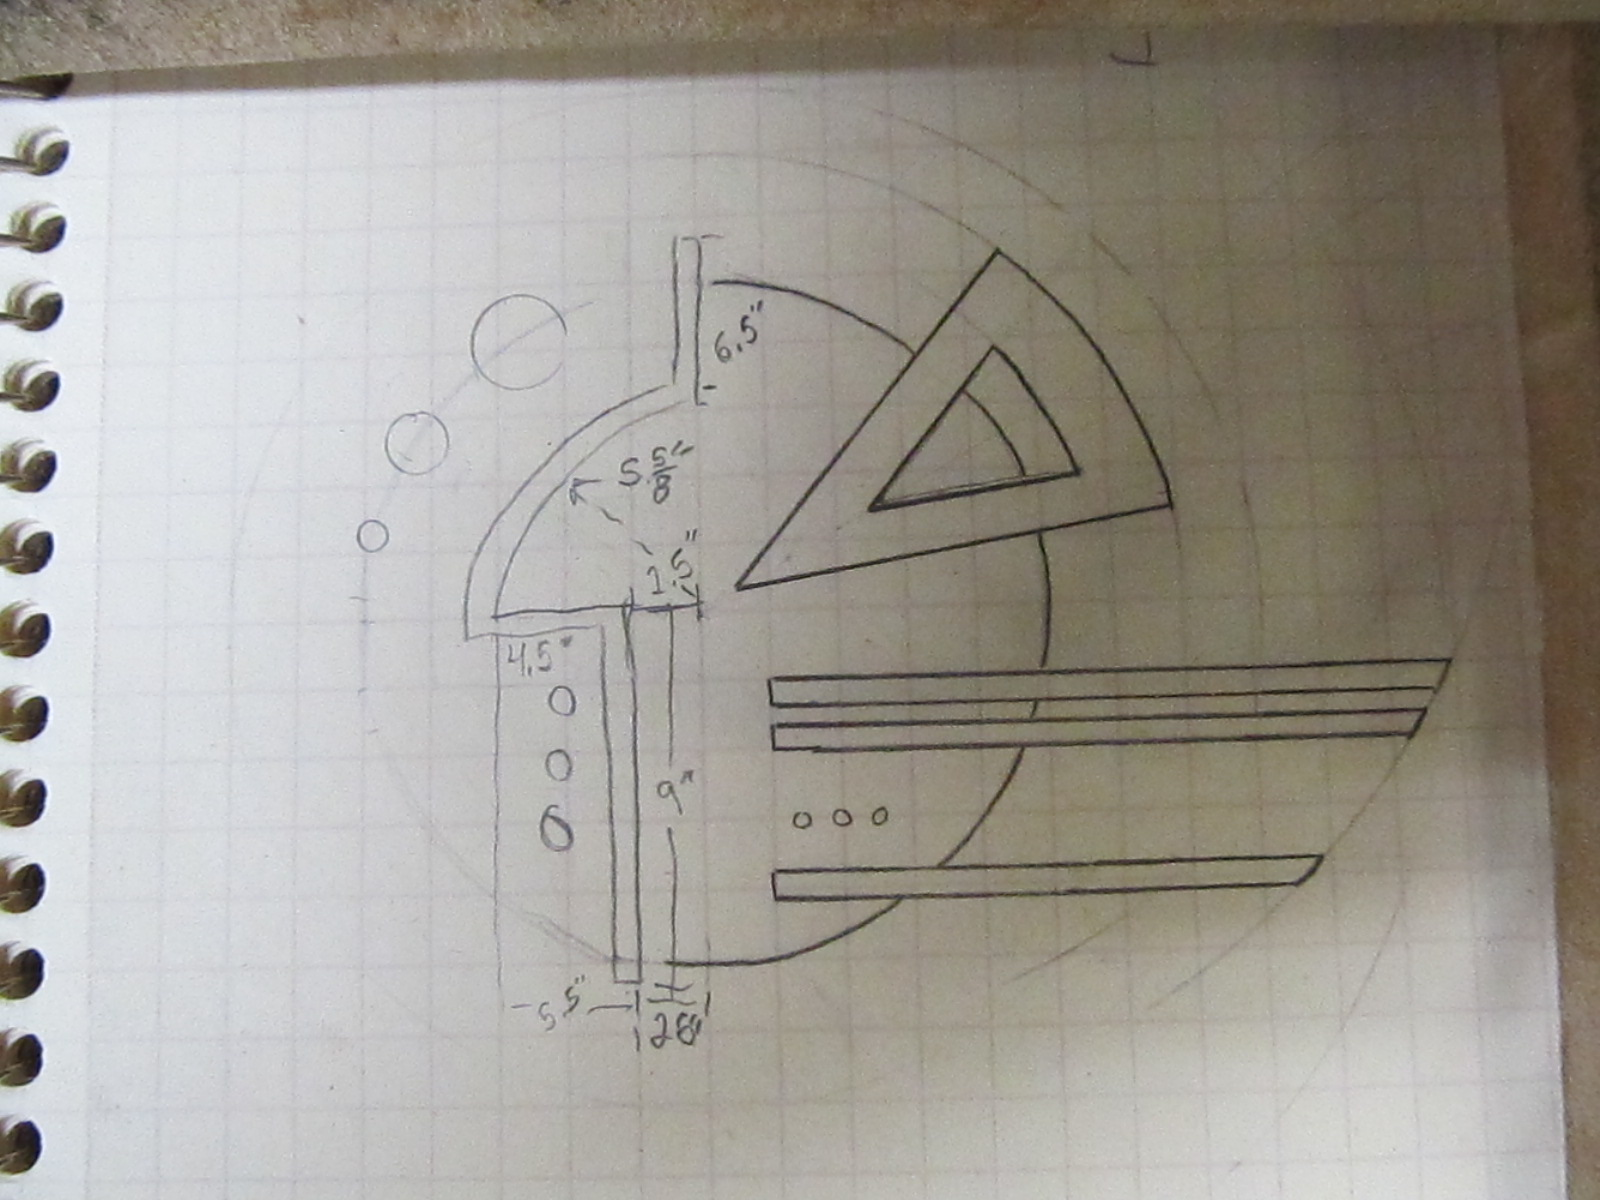 The preliminary sketch of the art deco wall-hanging.